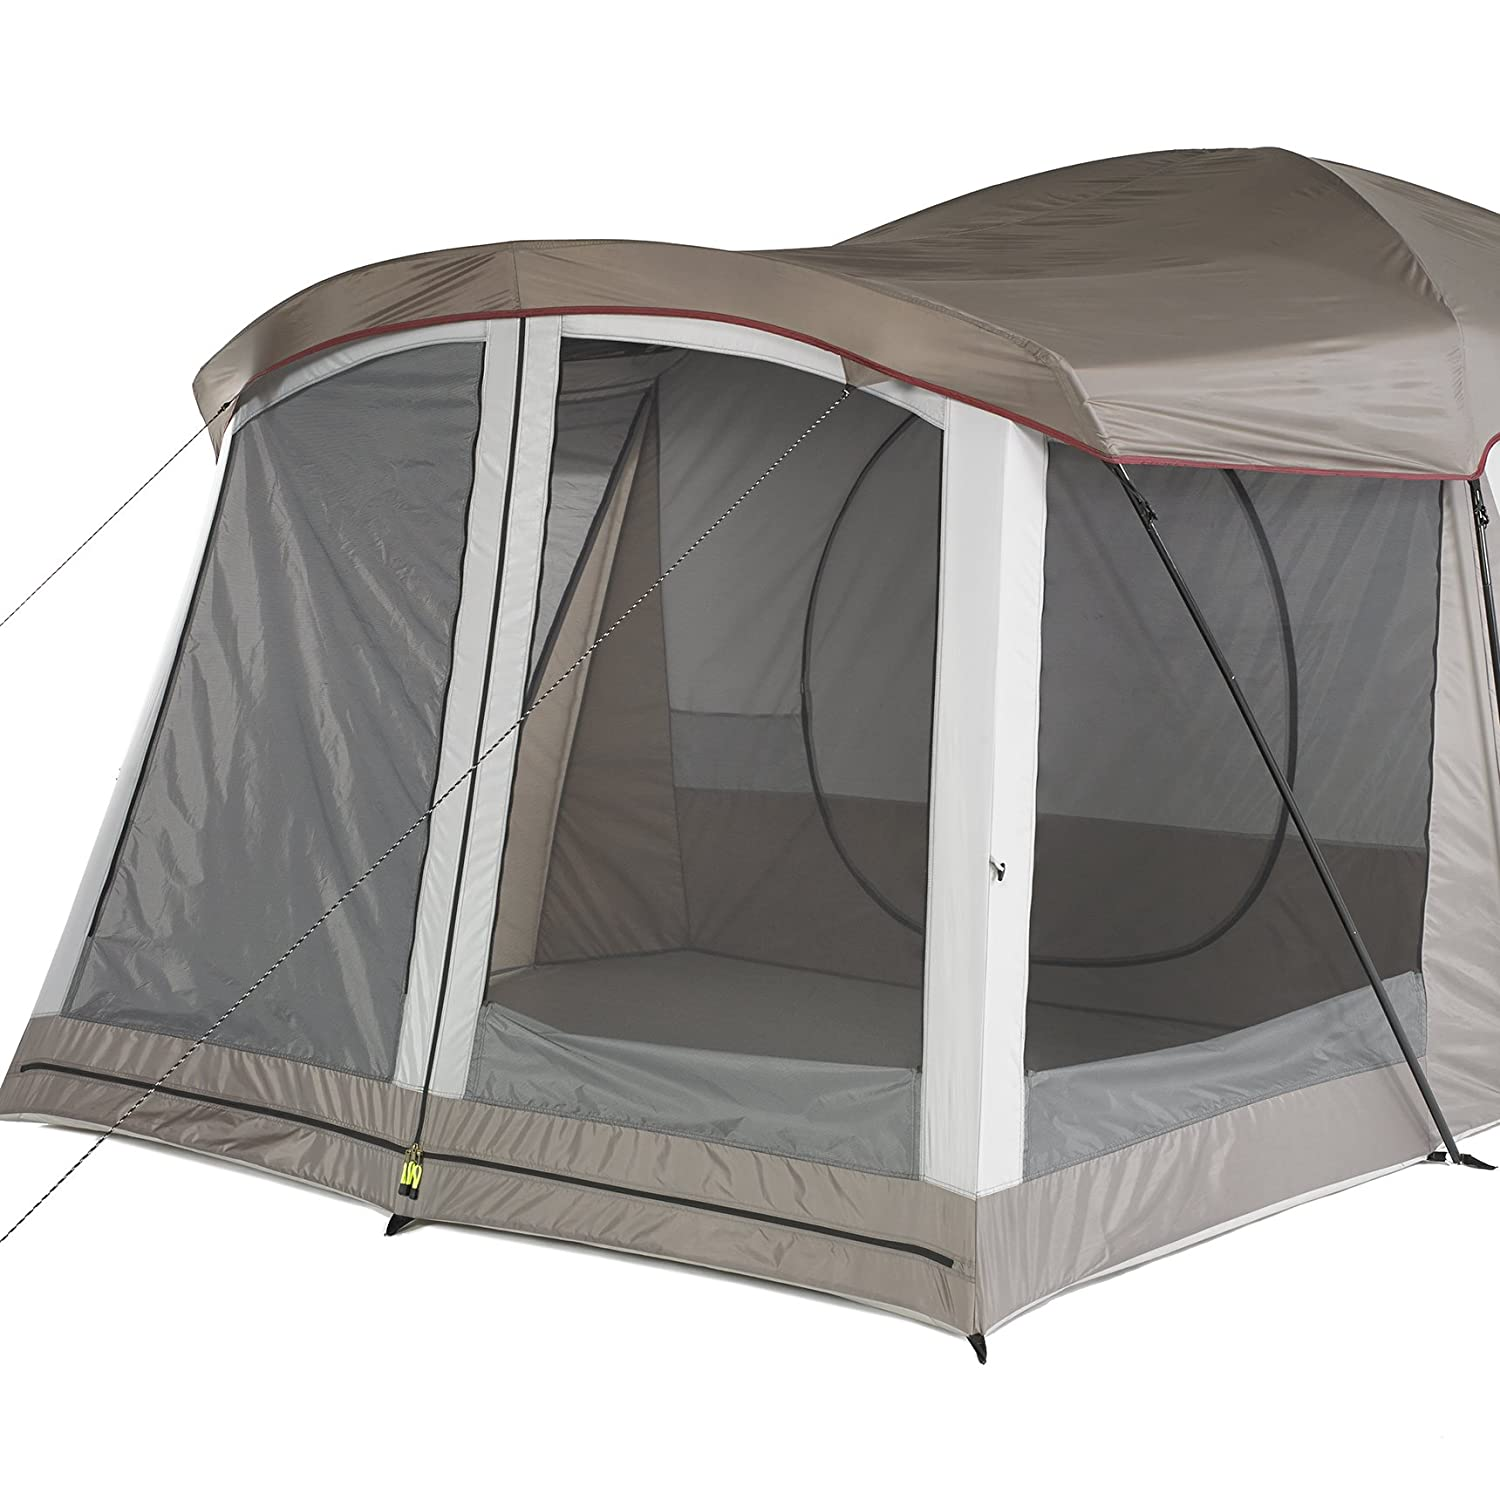 When you think about these larger tents you usually assume that theyu0027re going to take you a long time to set up. The Klondike Cabin Dome ...  sc 1 st  Traveling Monarch & Wenzel Klondike Eight-Person Family Cabin Dome Tent Review ...